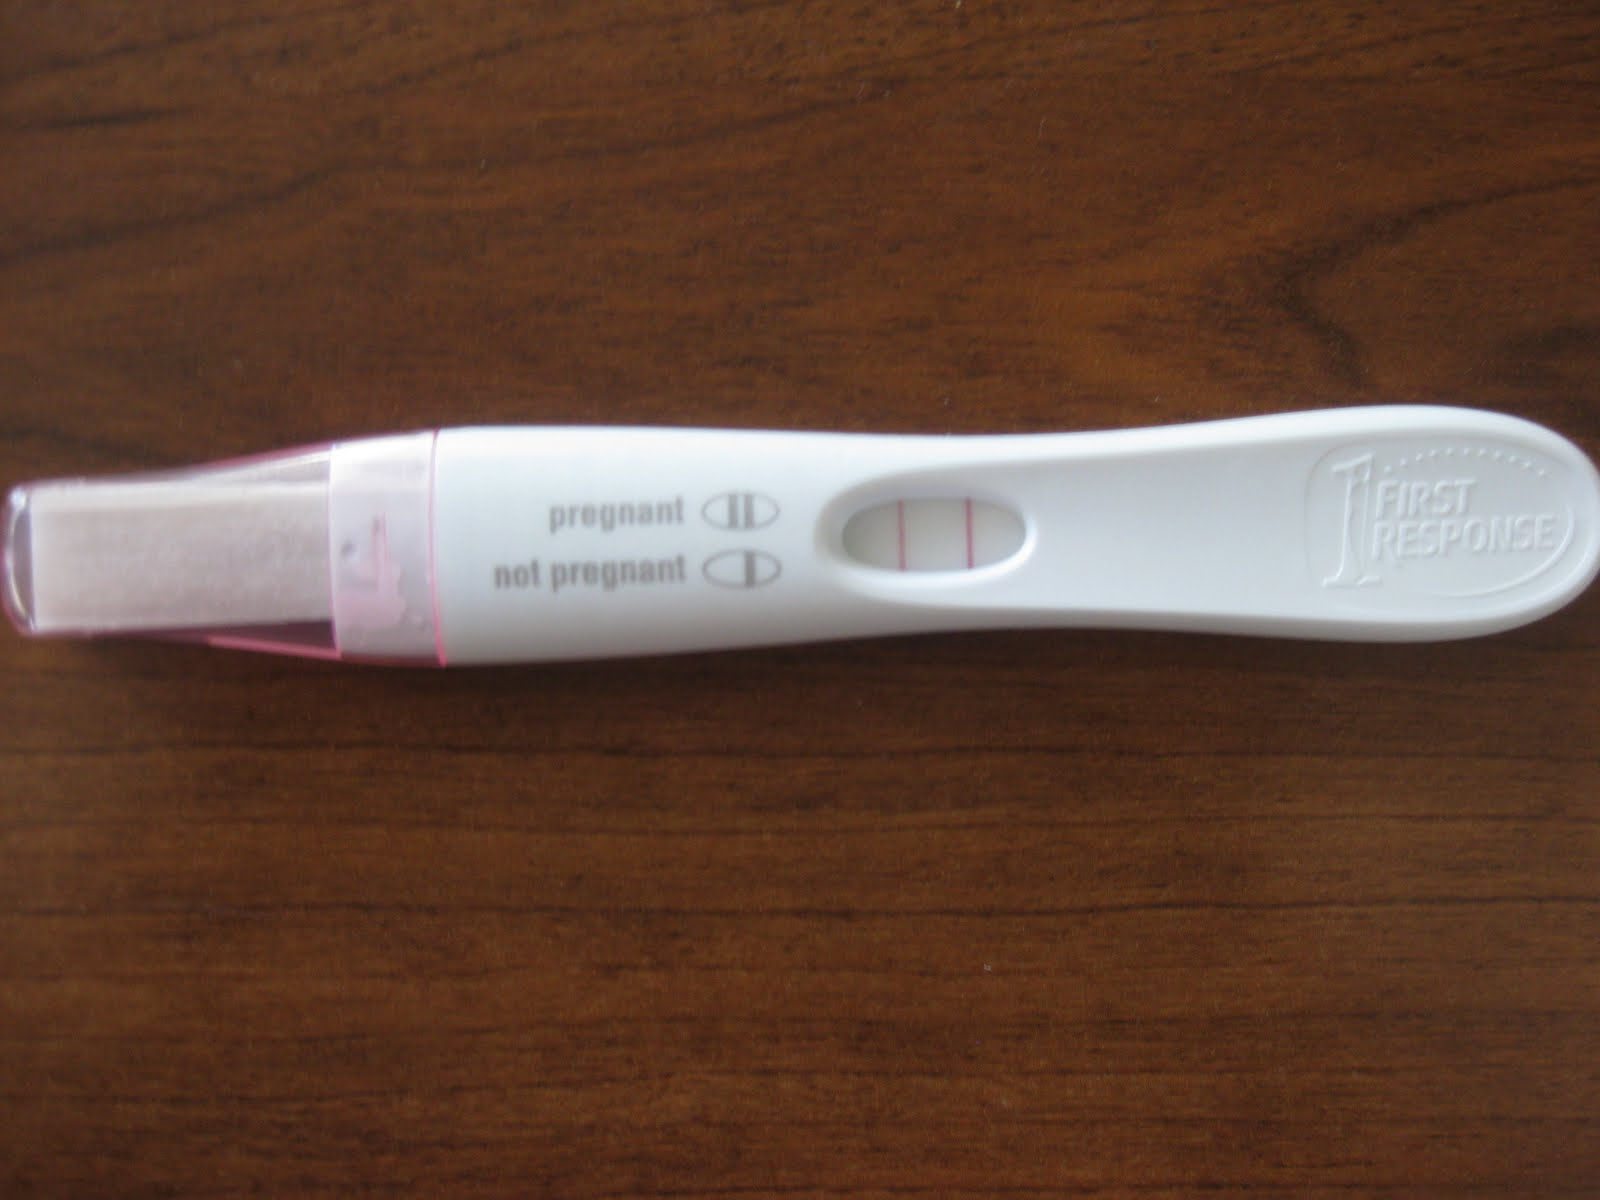 Pregnancy Tests: These can cost upwards of $12 at the grocery store, but you can get the same thing at the dollar store for less. After all, a pregnancy test has to do what it says on the package.